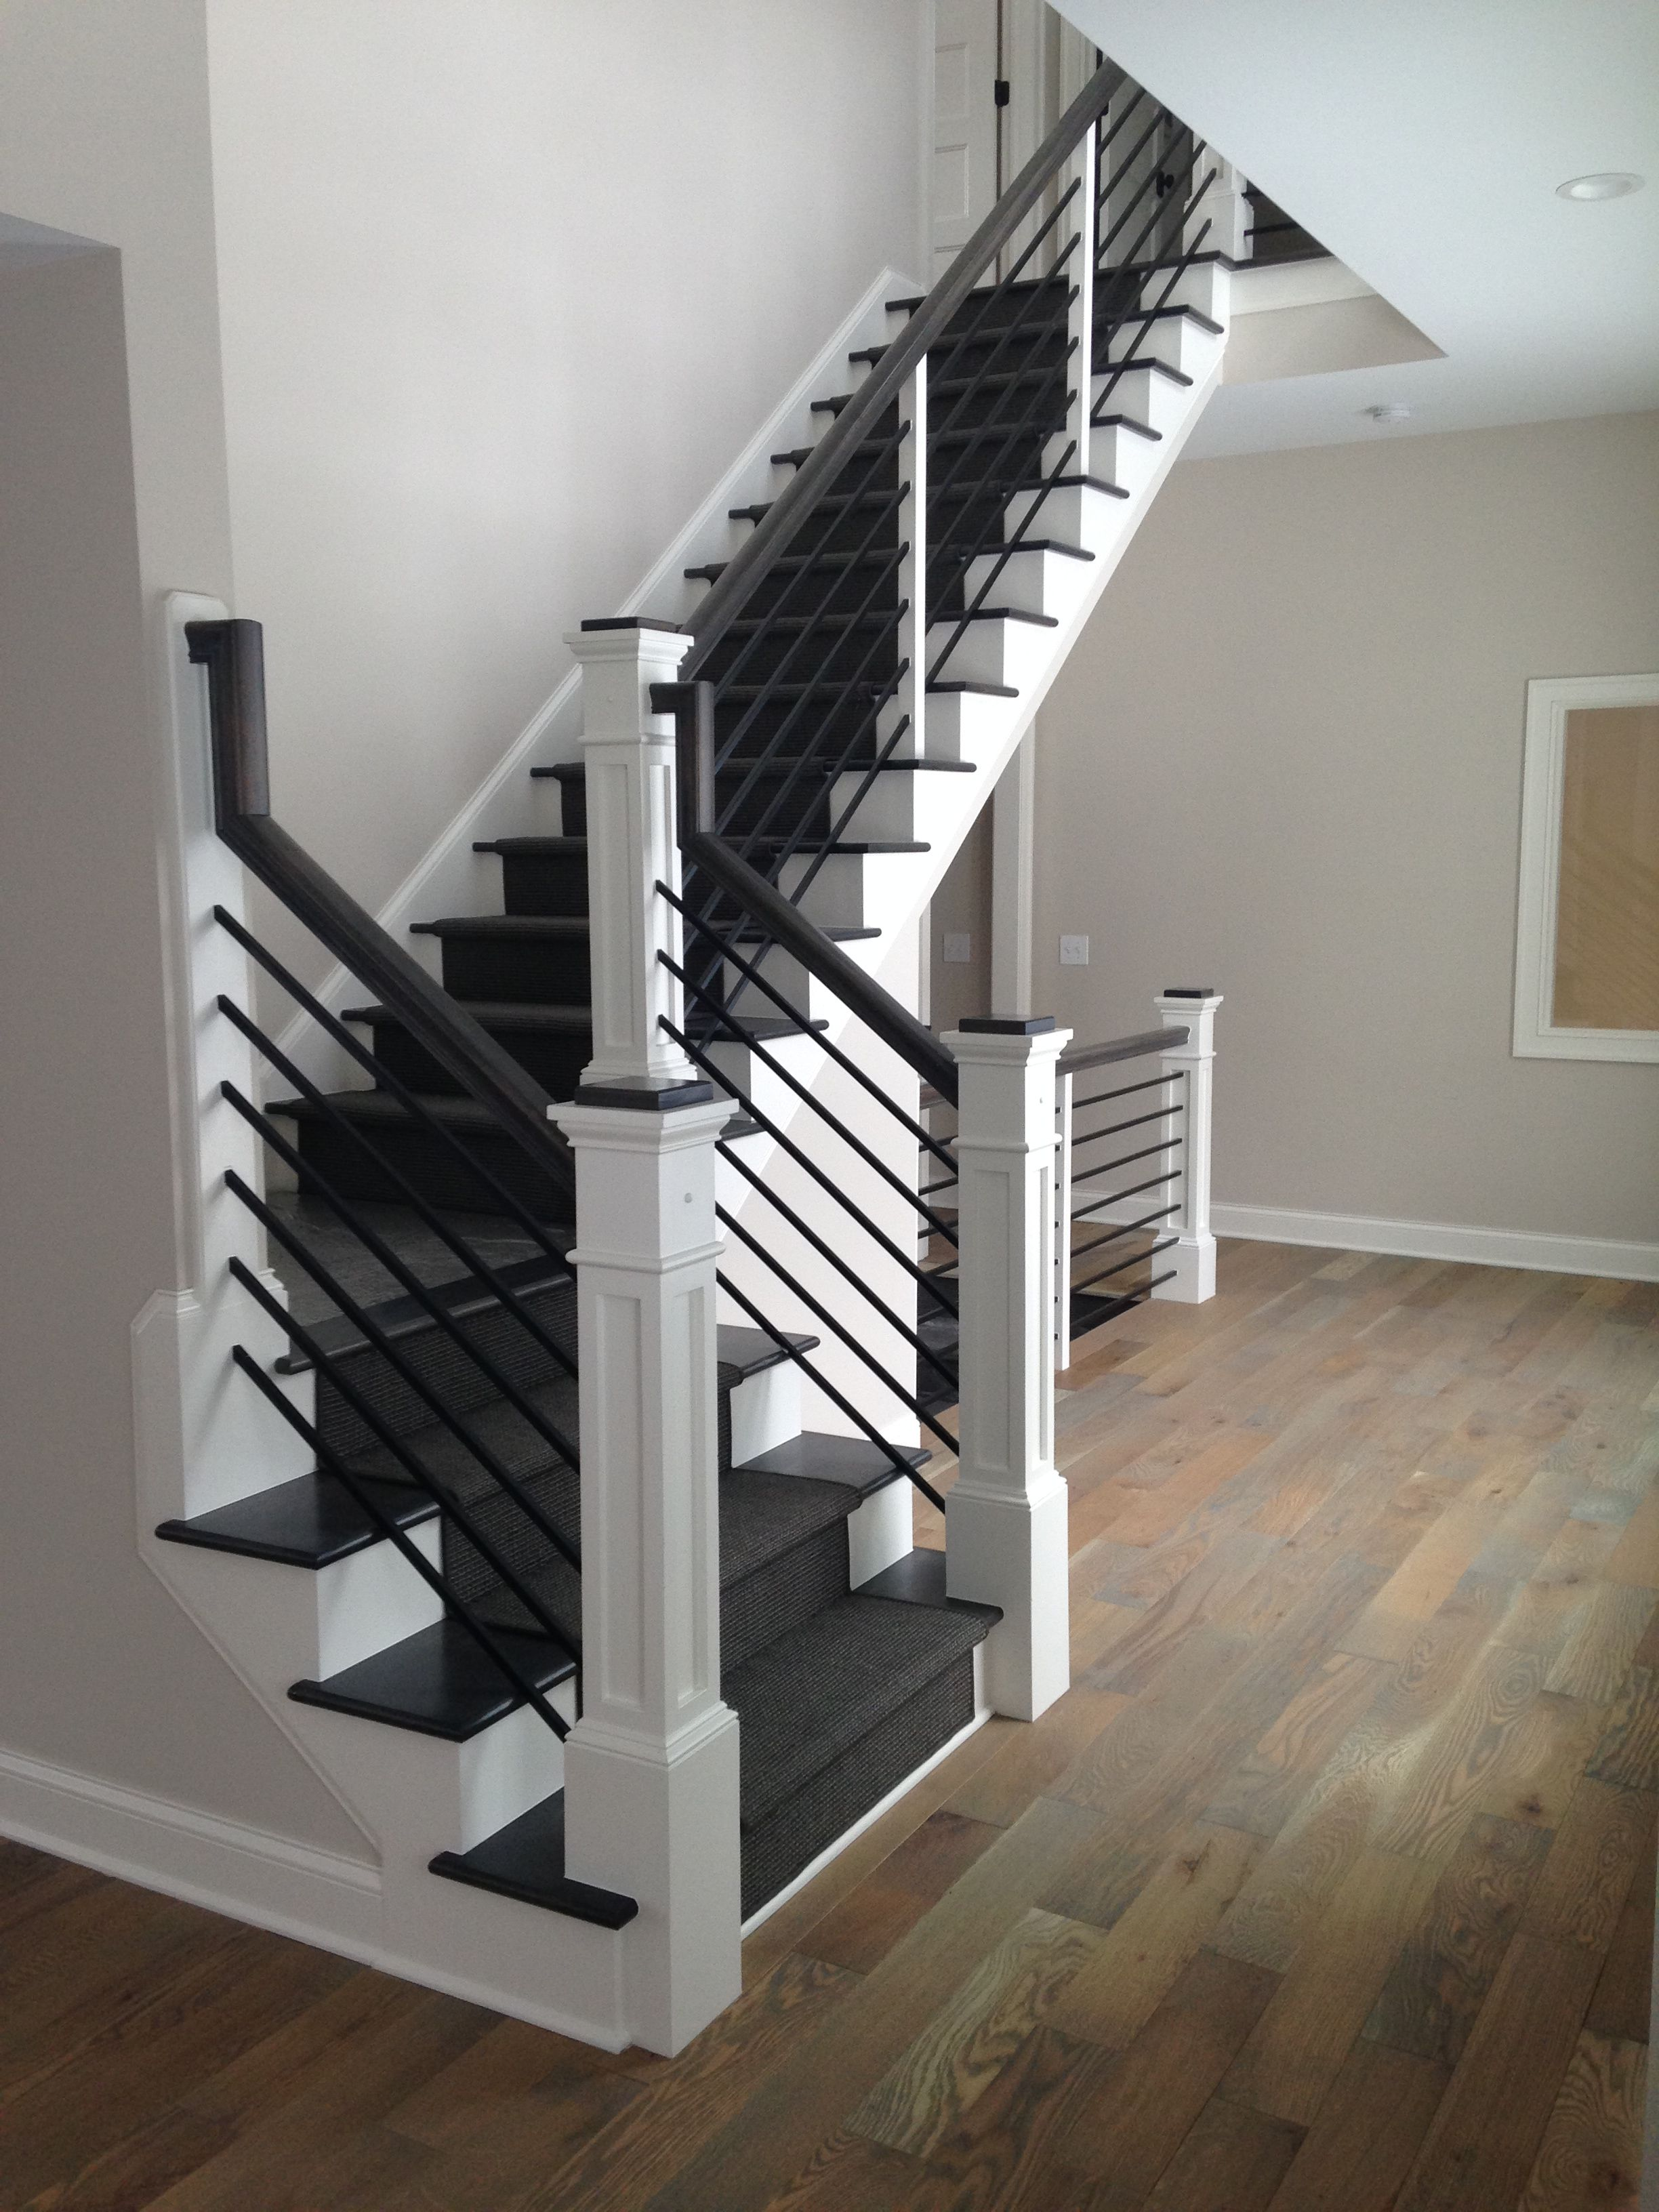 Tn House Miyahara Architect Office Staircase Handrail Interior Stairs Stairs Design